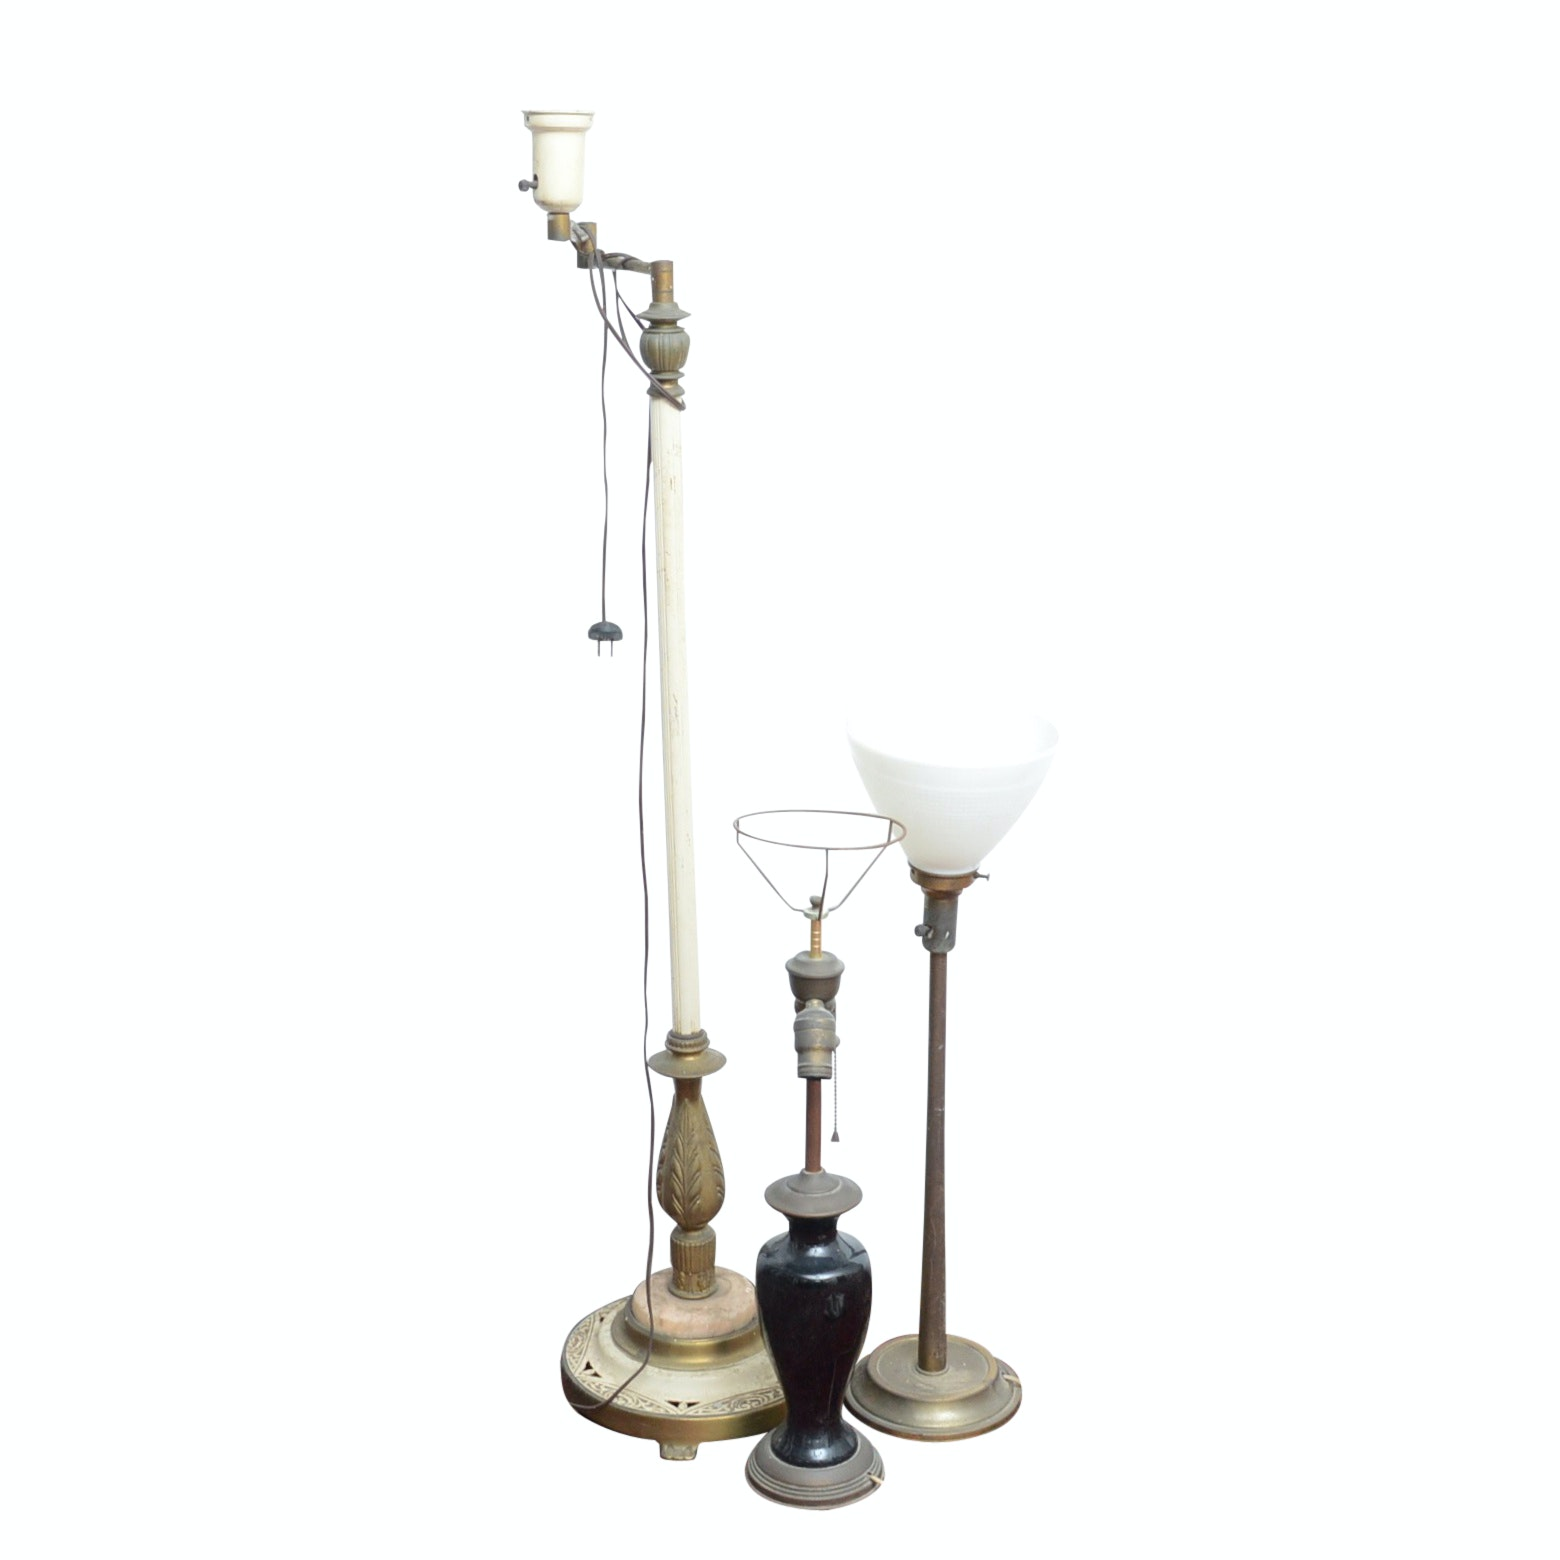 Swing Arm Floor Lamp and Torchiere Table Lamps